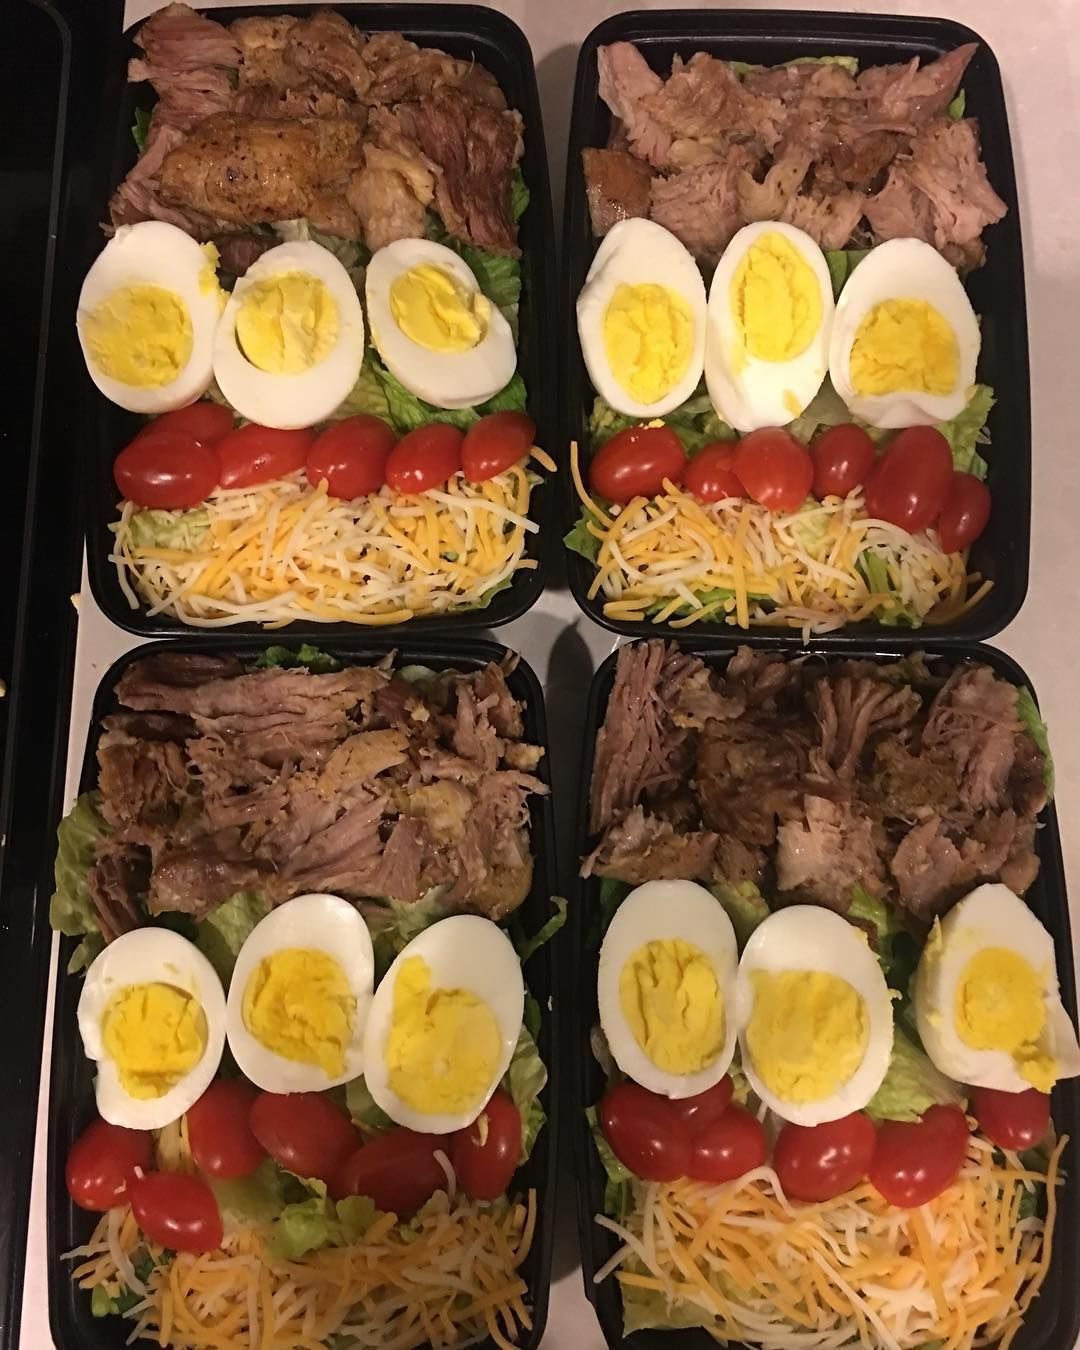 Easy Keto Combinations Even Lazy Dieters Can Meal Prep In 2020 Keto Meal Plan Keto Meal Prep Keto Recipes Easy